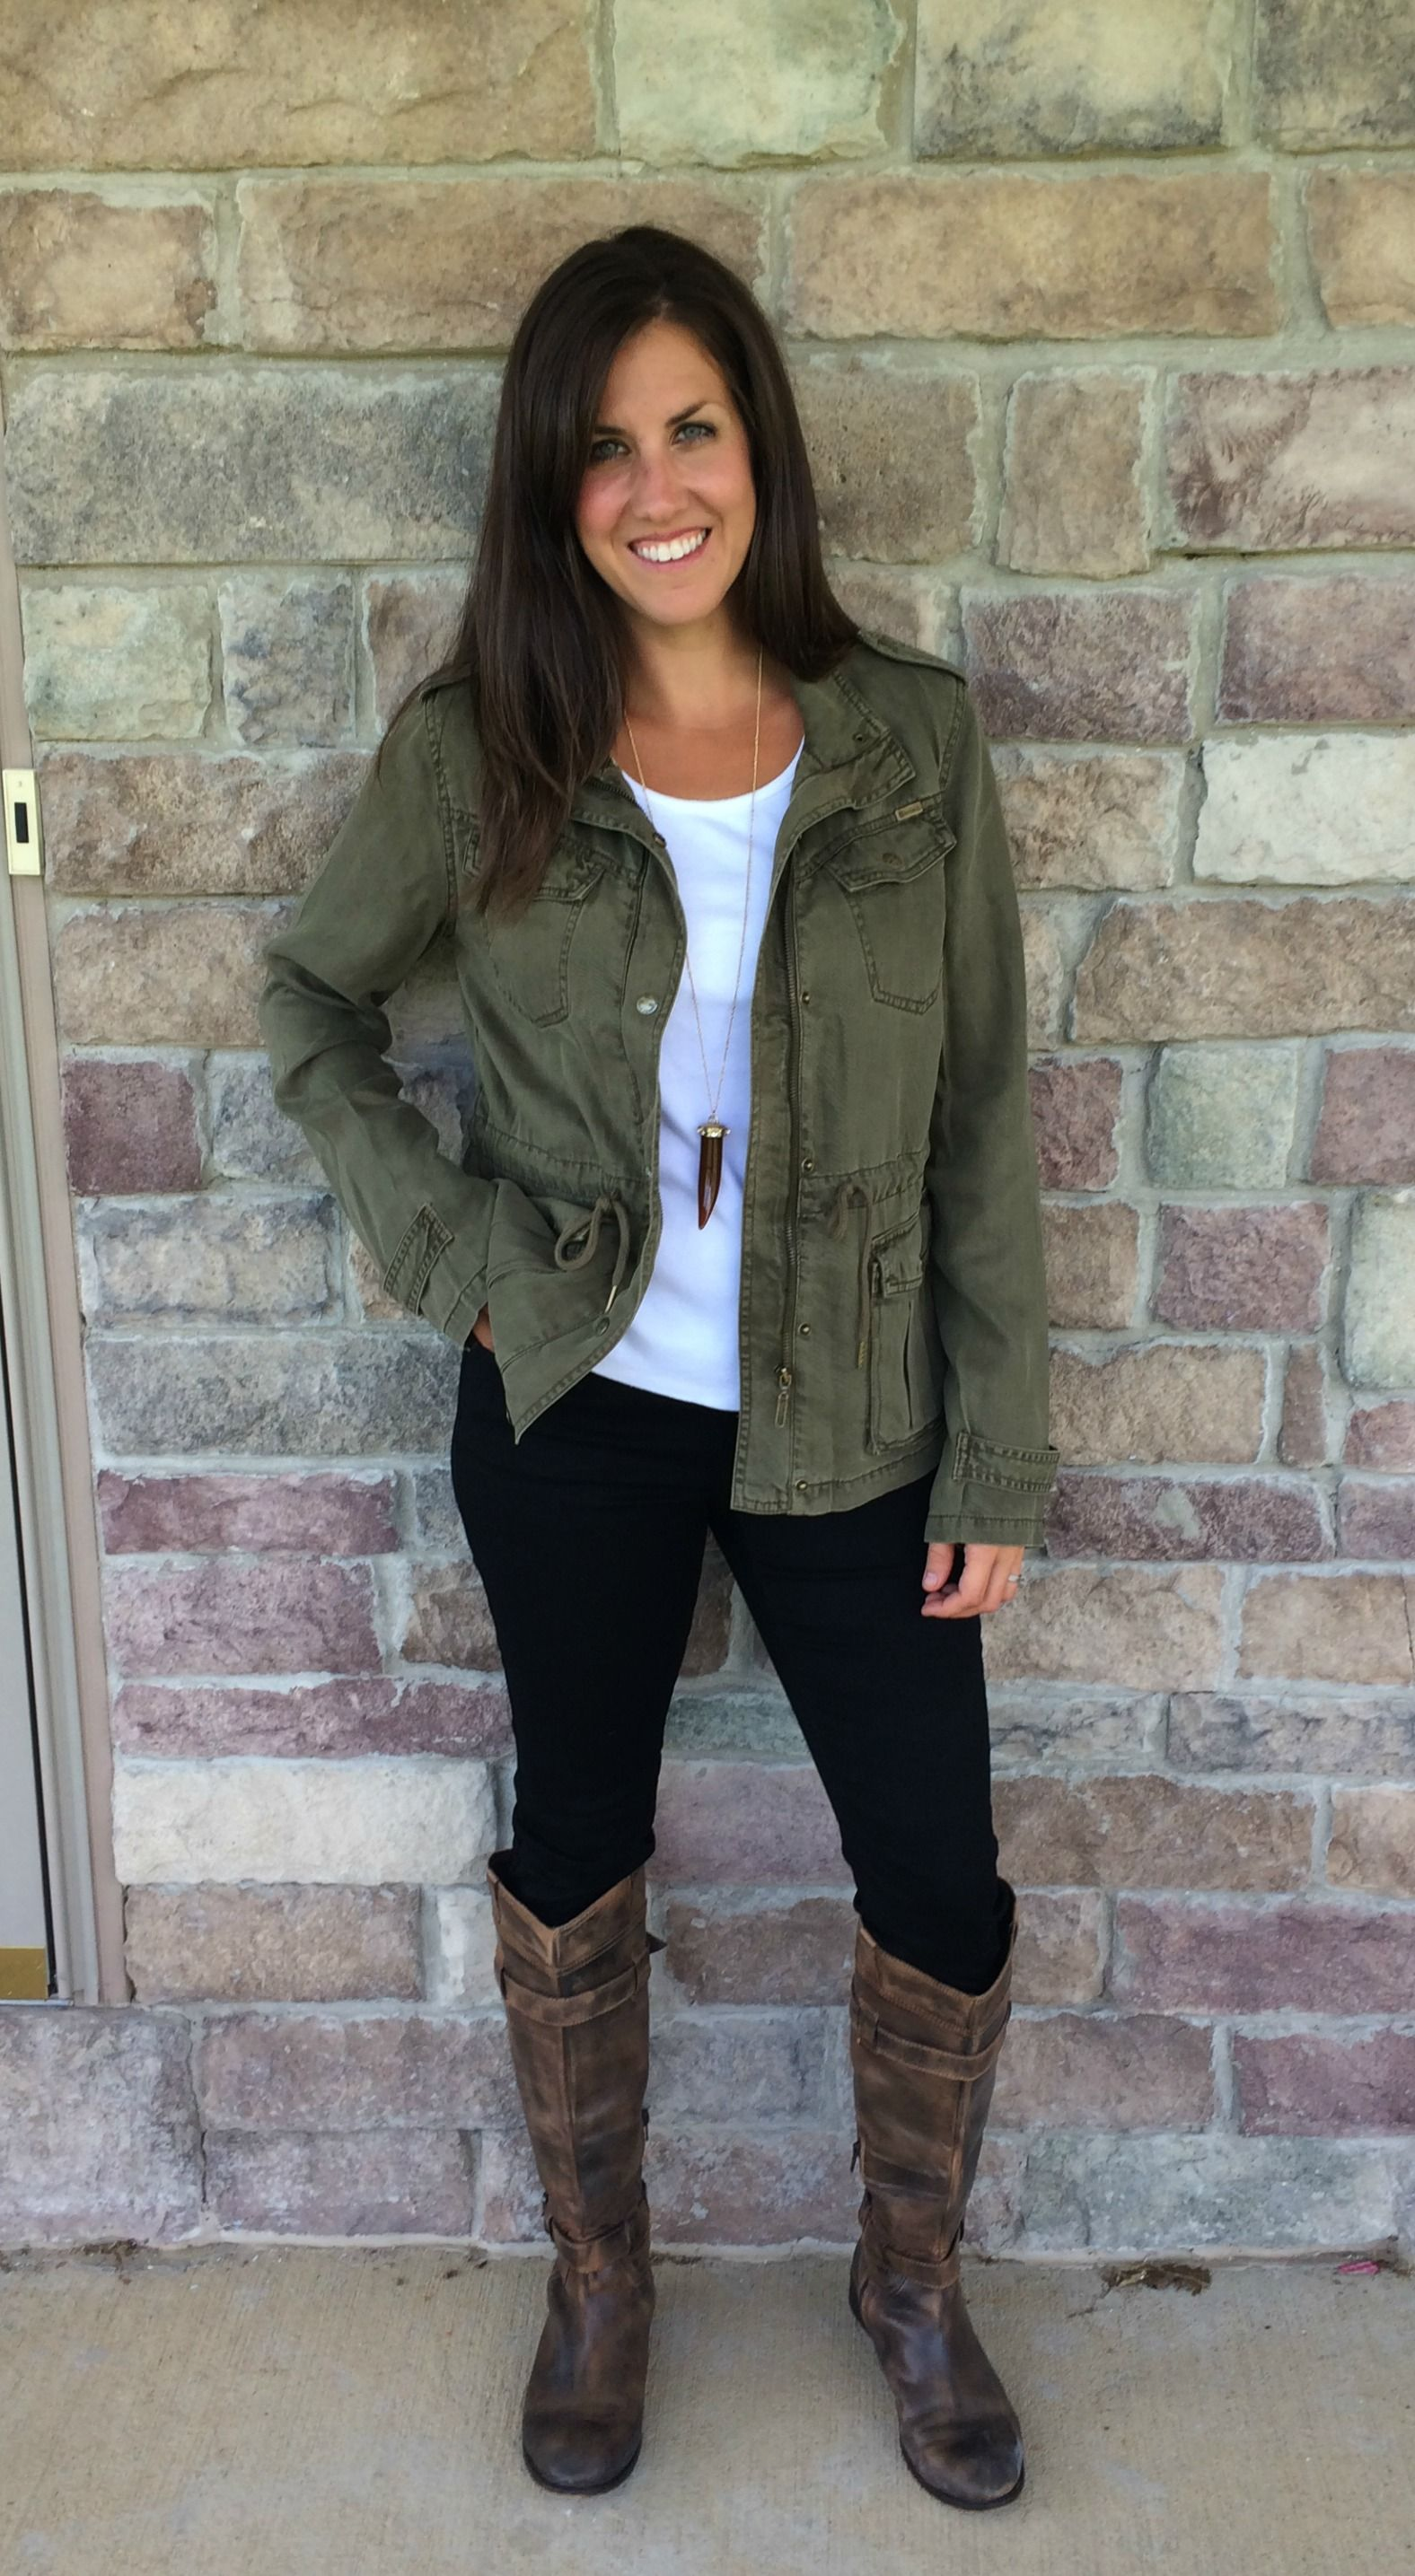 Military Olive colored Jacket skinny jeans riding boots outfit | Mom Outfits | Pinterest